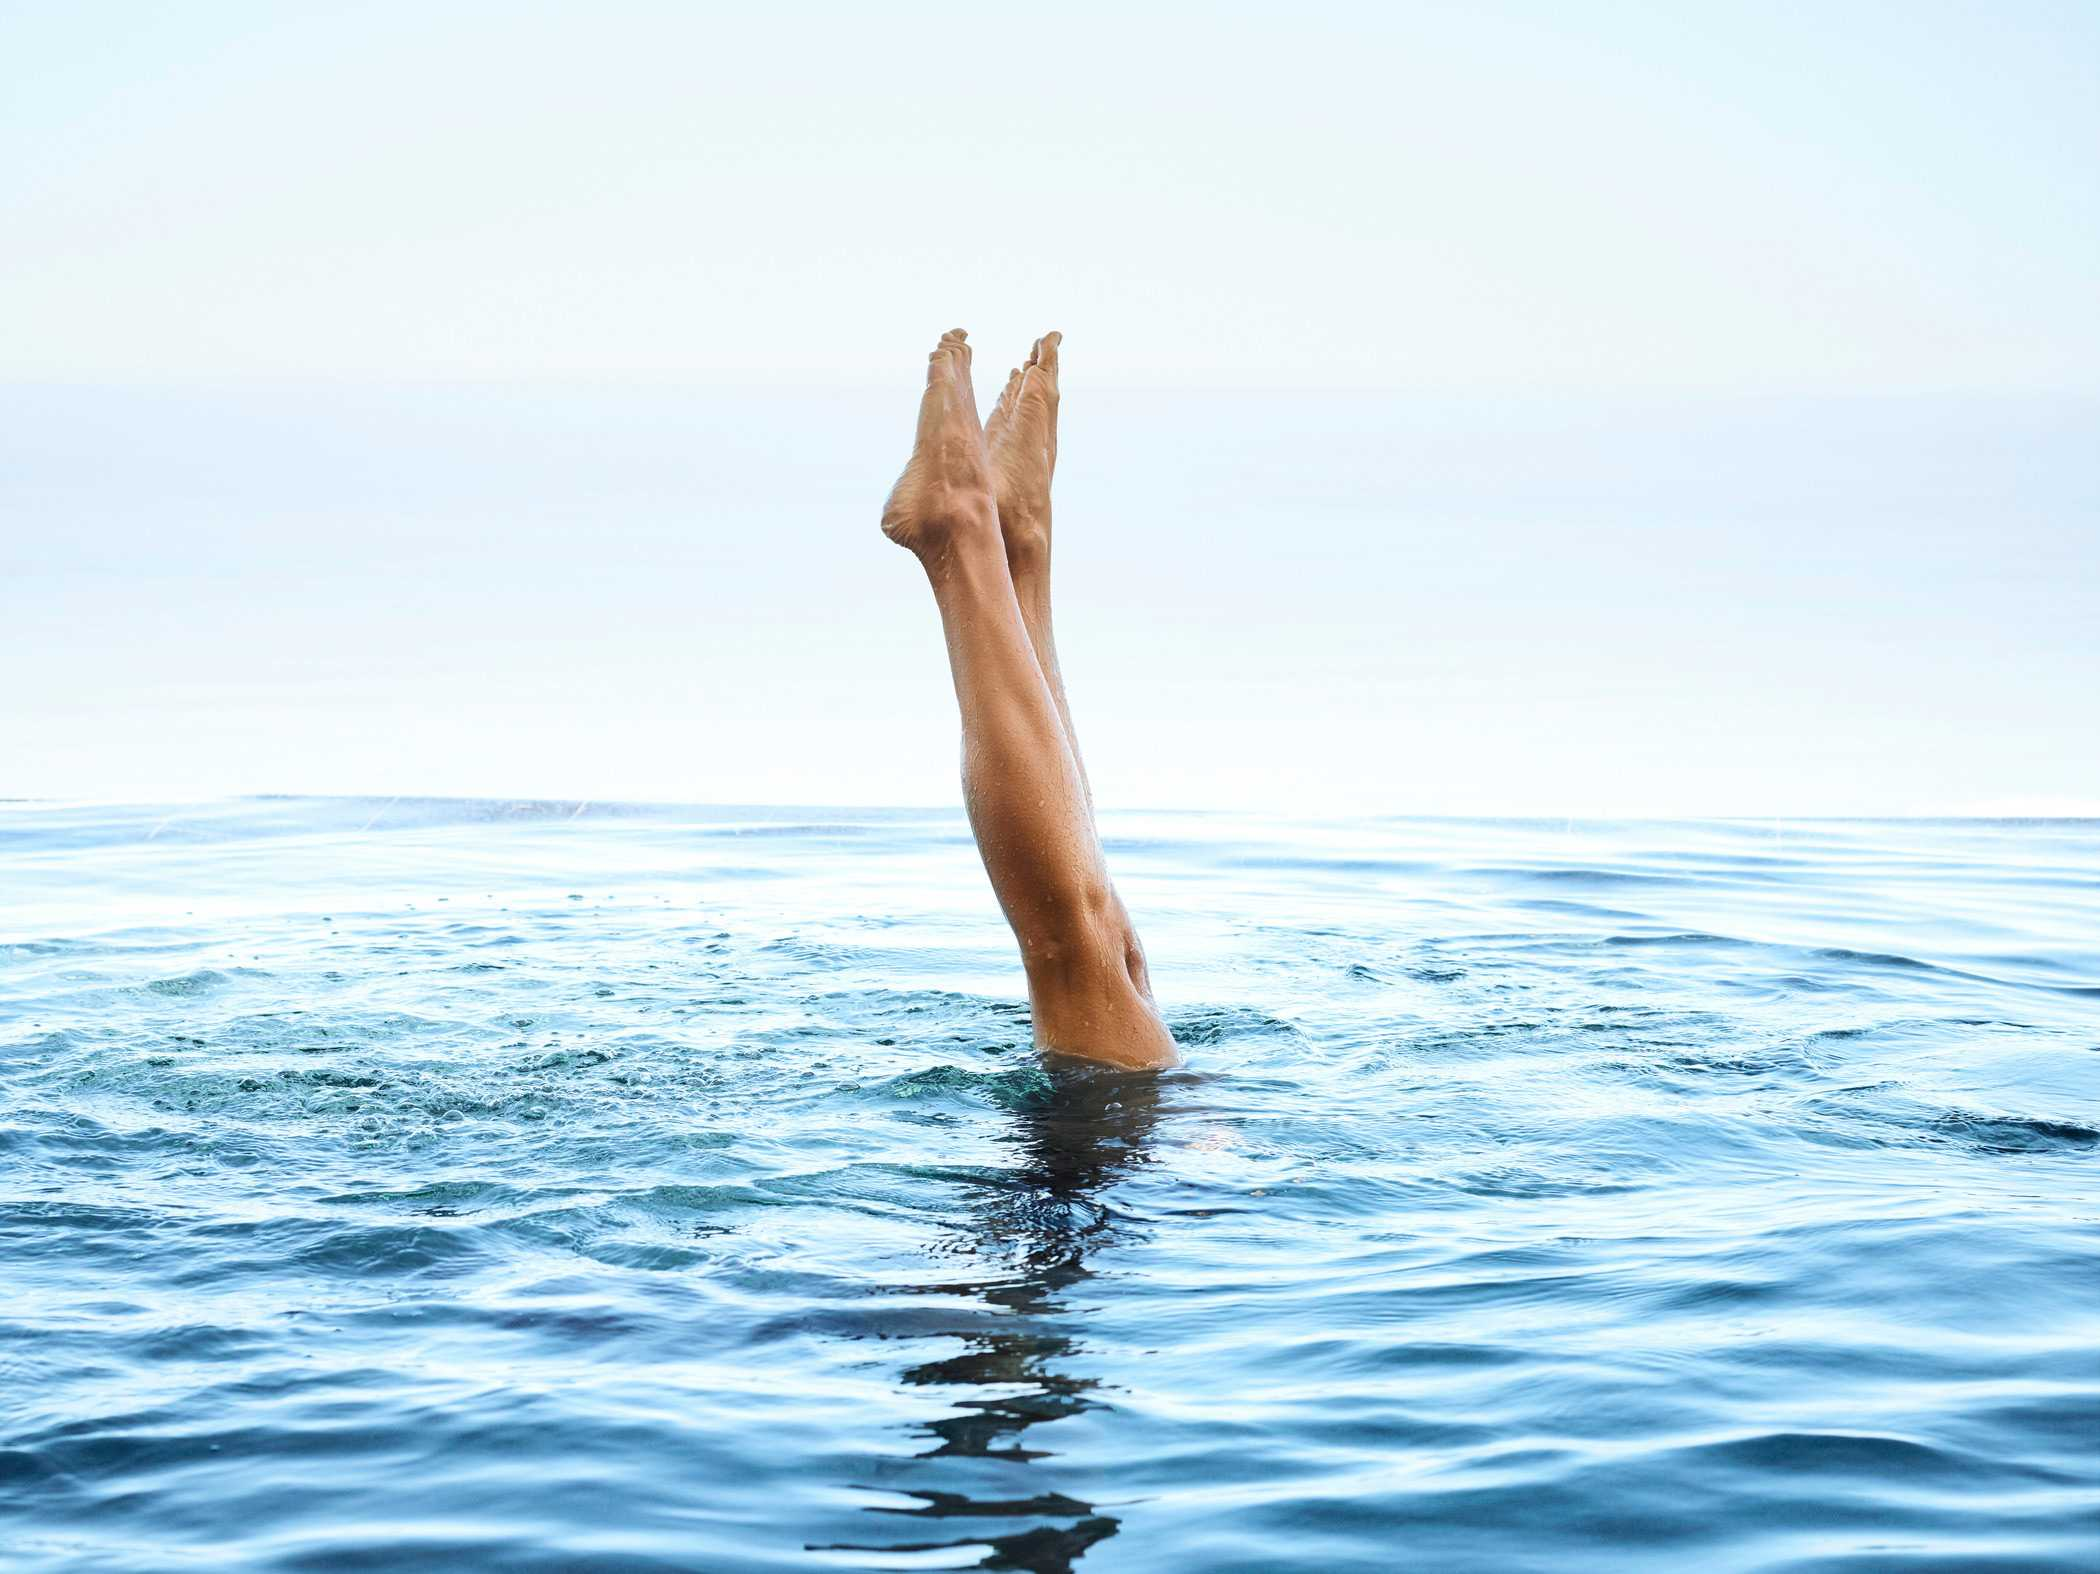 Heavenly-Spa-Swimmer-Legs-Sticking-out-of-Water